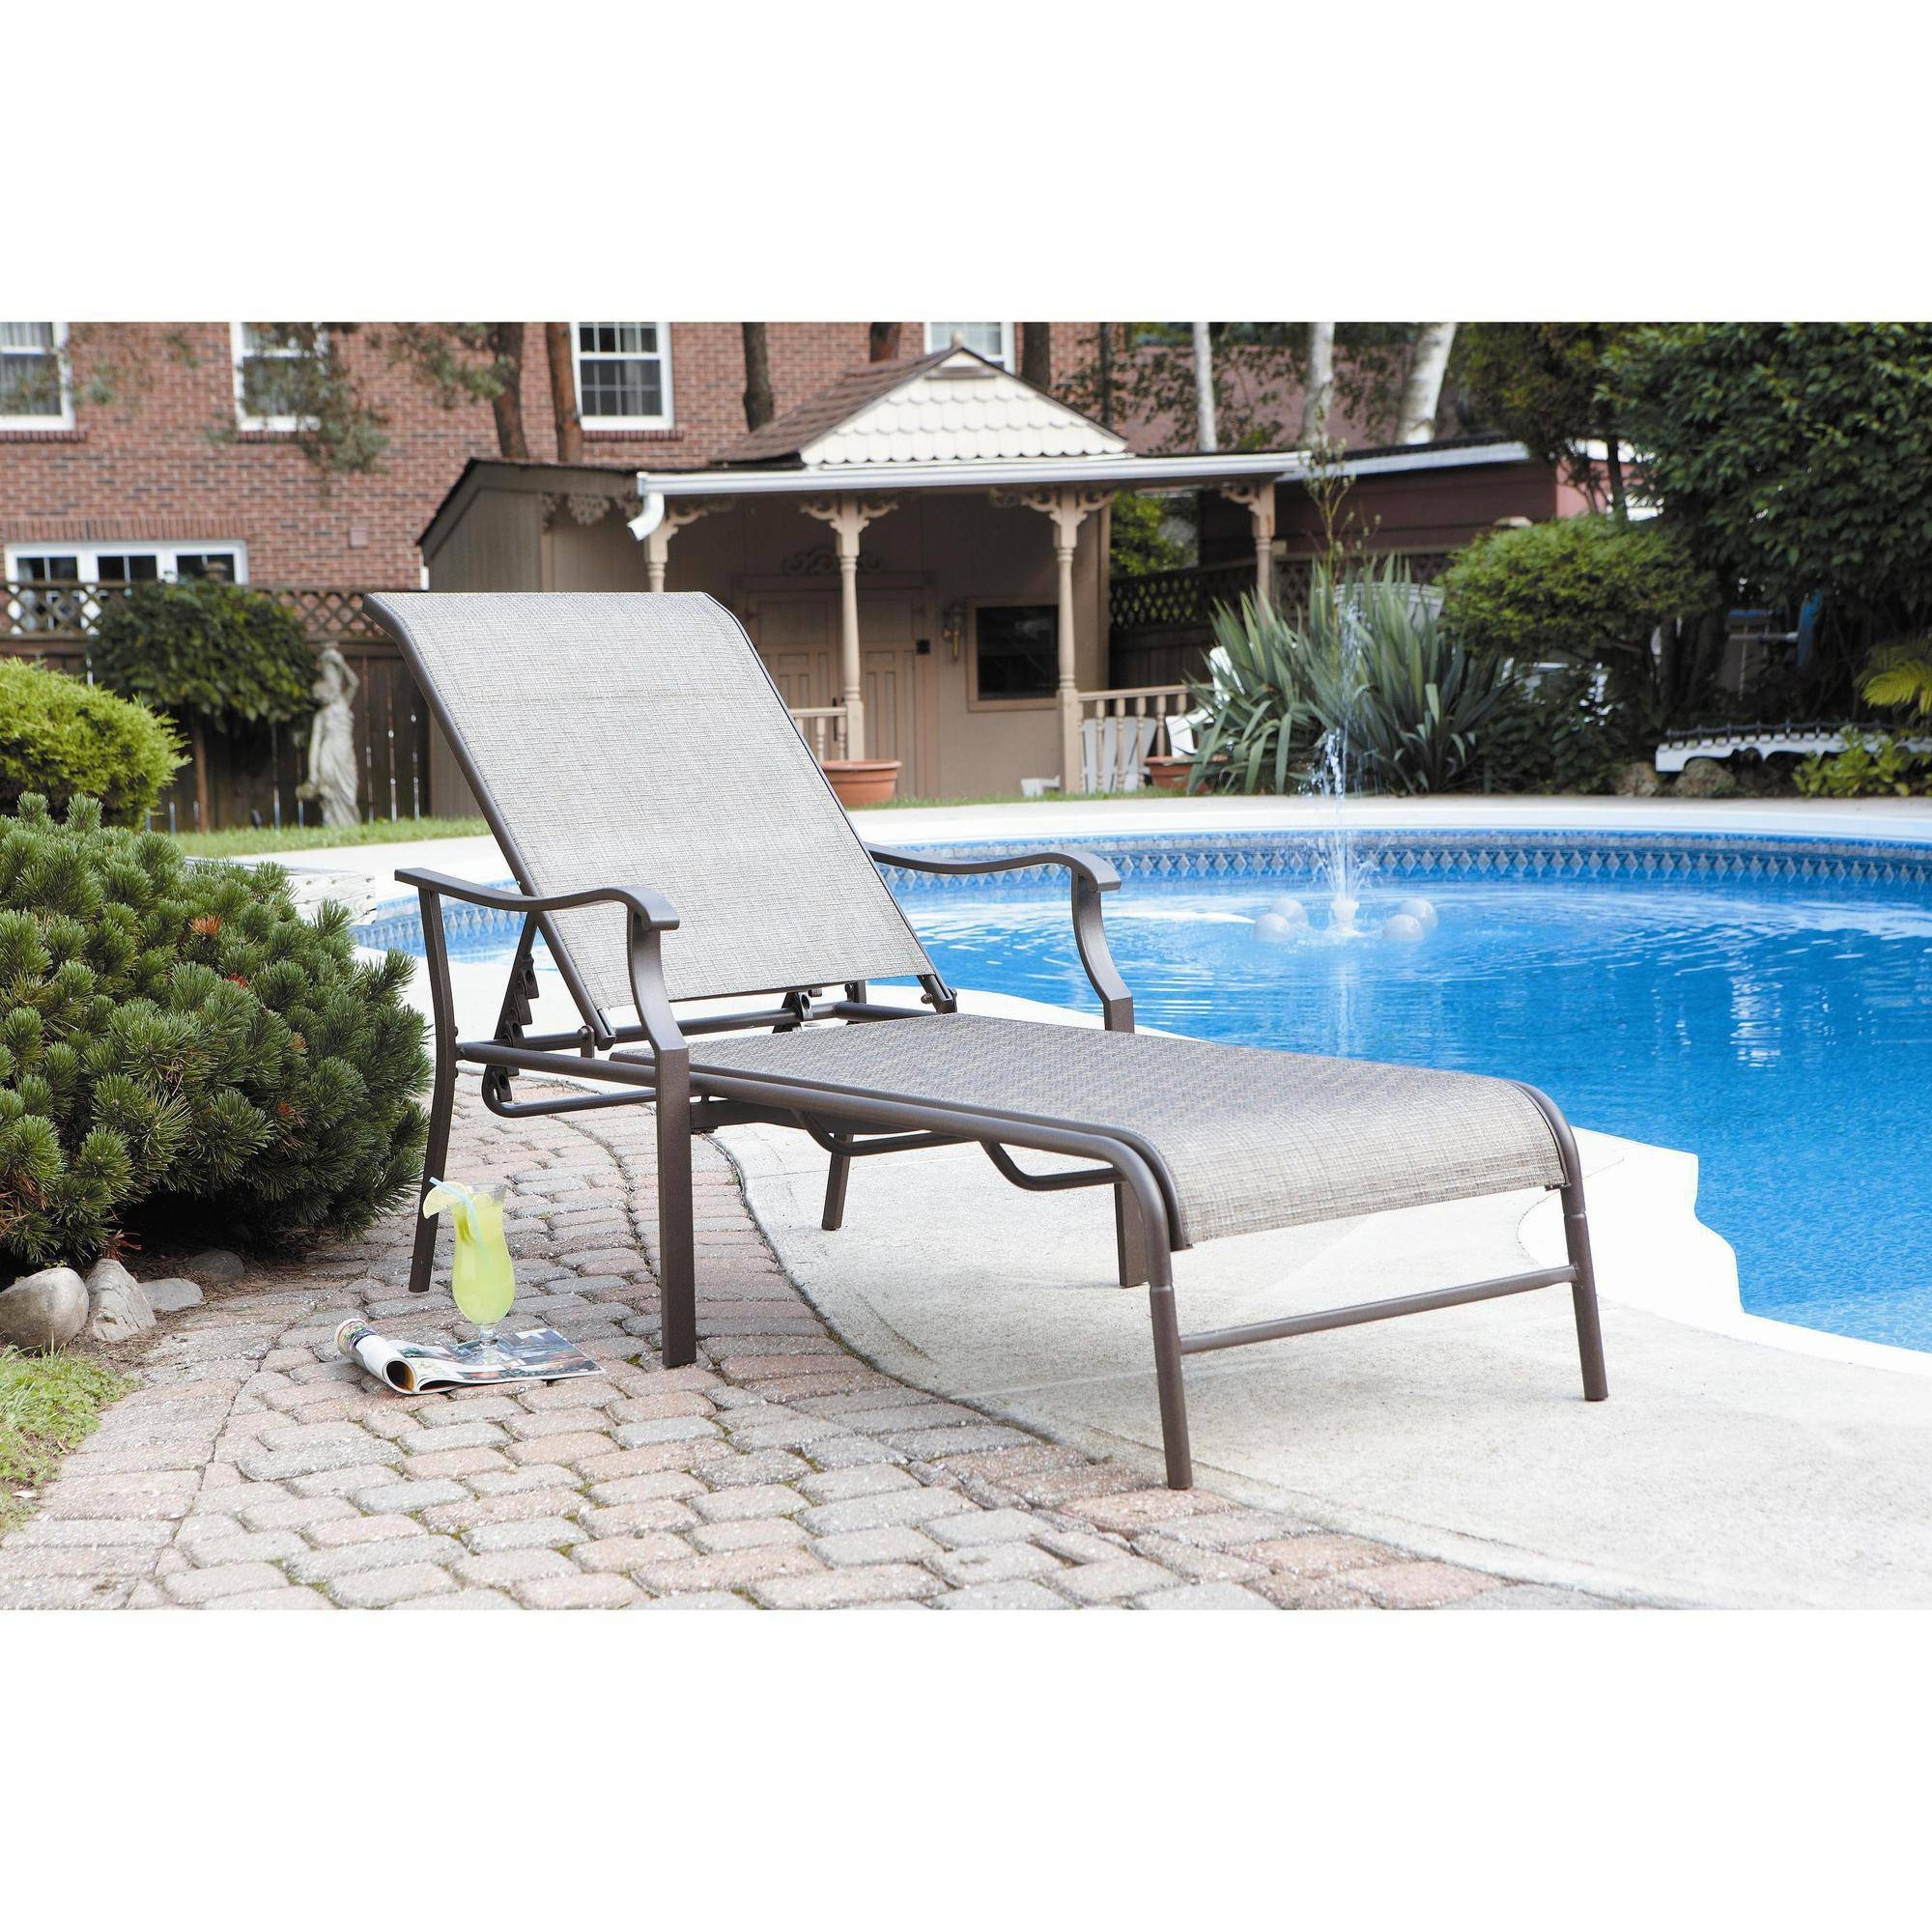 Outdoor Chaise Lounge Chairs With Canopy Throughout 2017 Outdoor : White Outdoor Chaise Lounge Lounge Couch Sun Lounger (View 10 of 15)